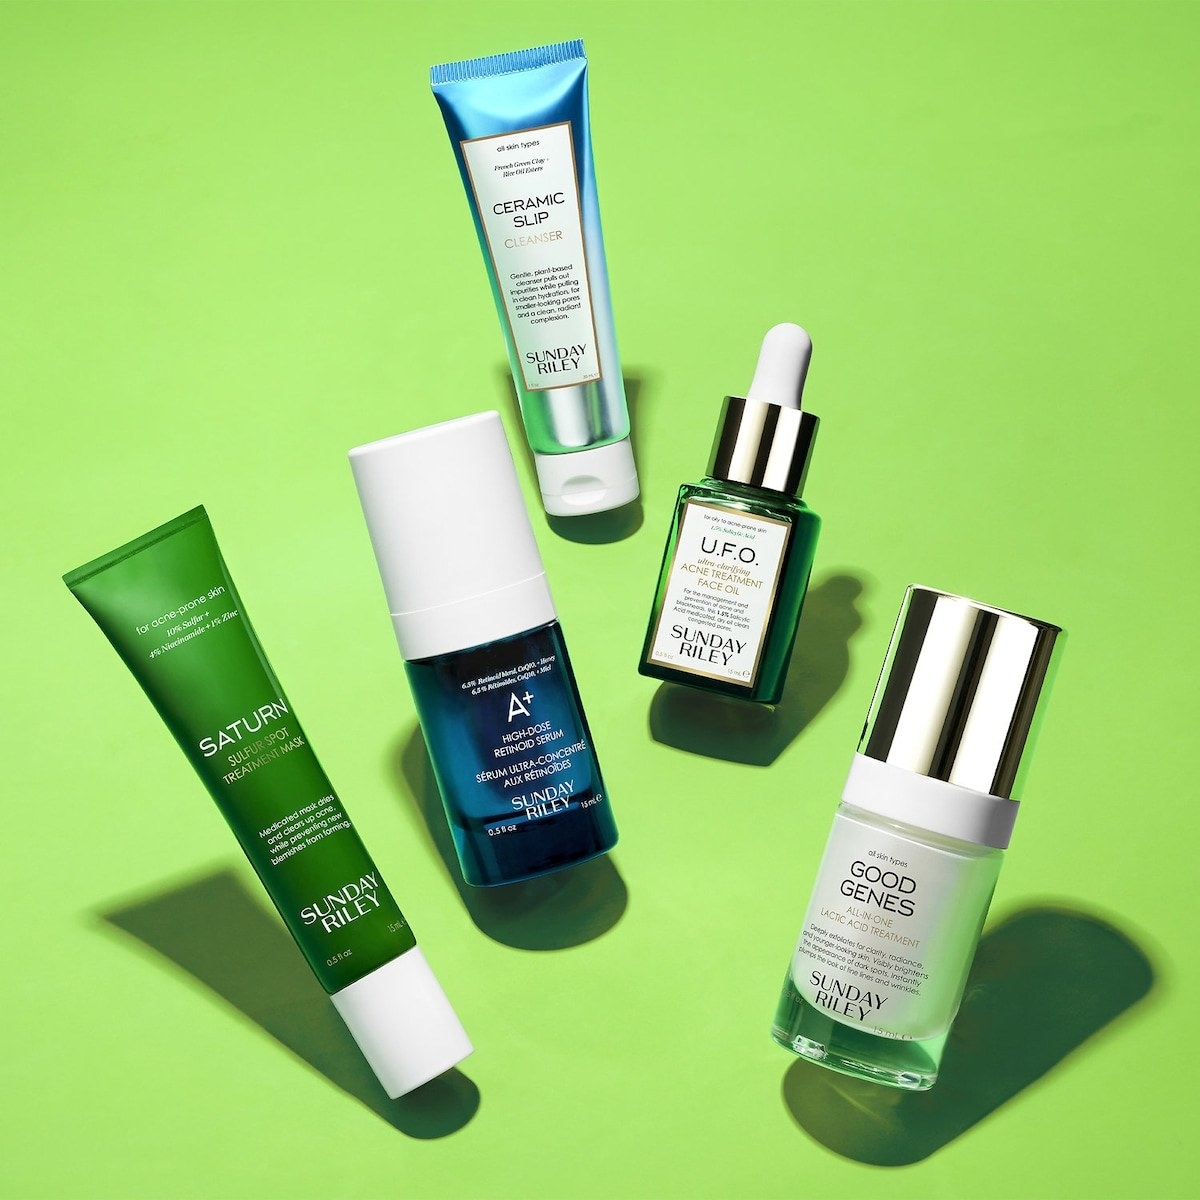 The five bottles of skincare products included in the set